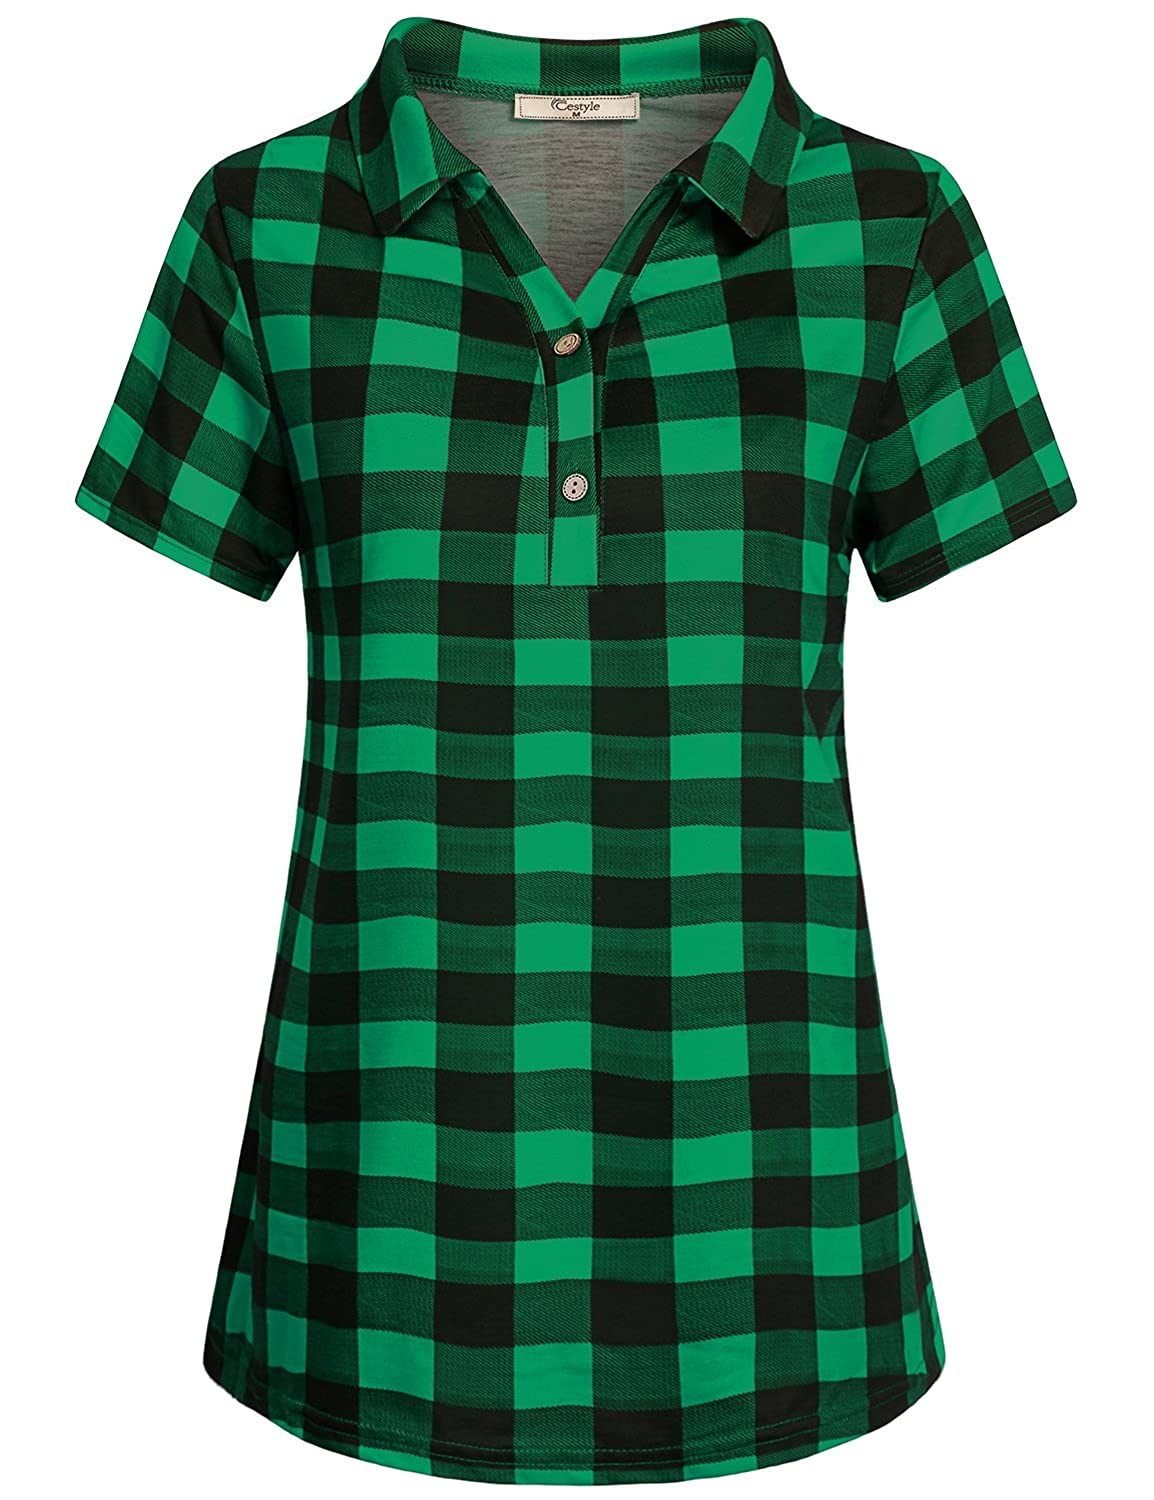 Cestyle Womens Casual Short Sleeve Collared Button Down Knit Plaid